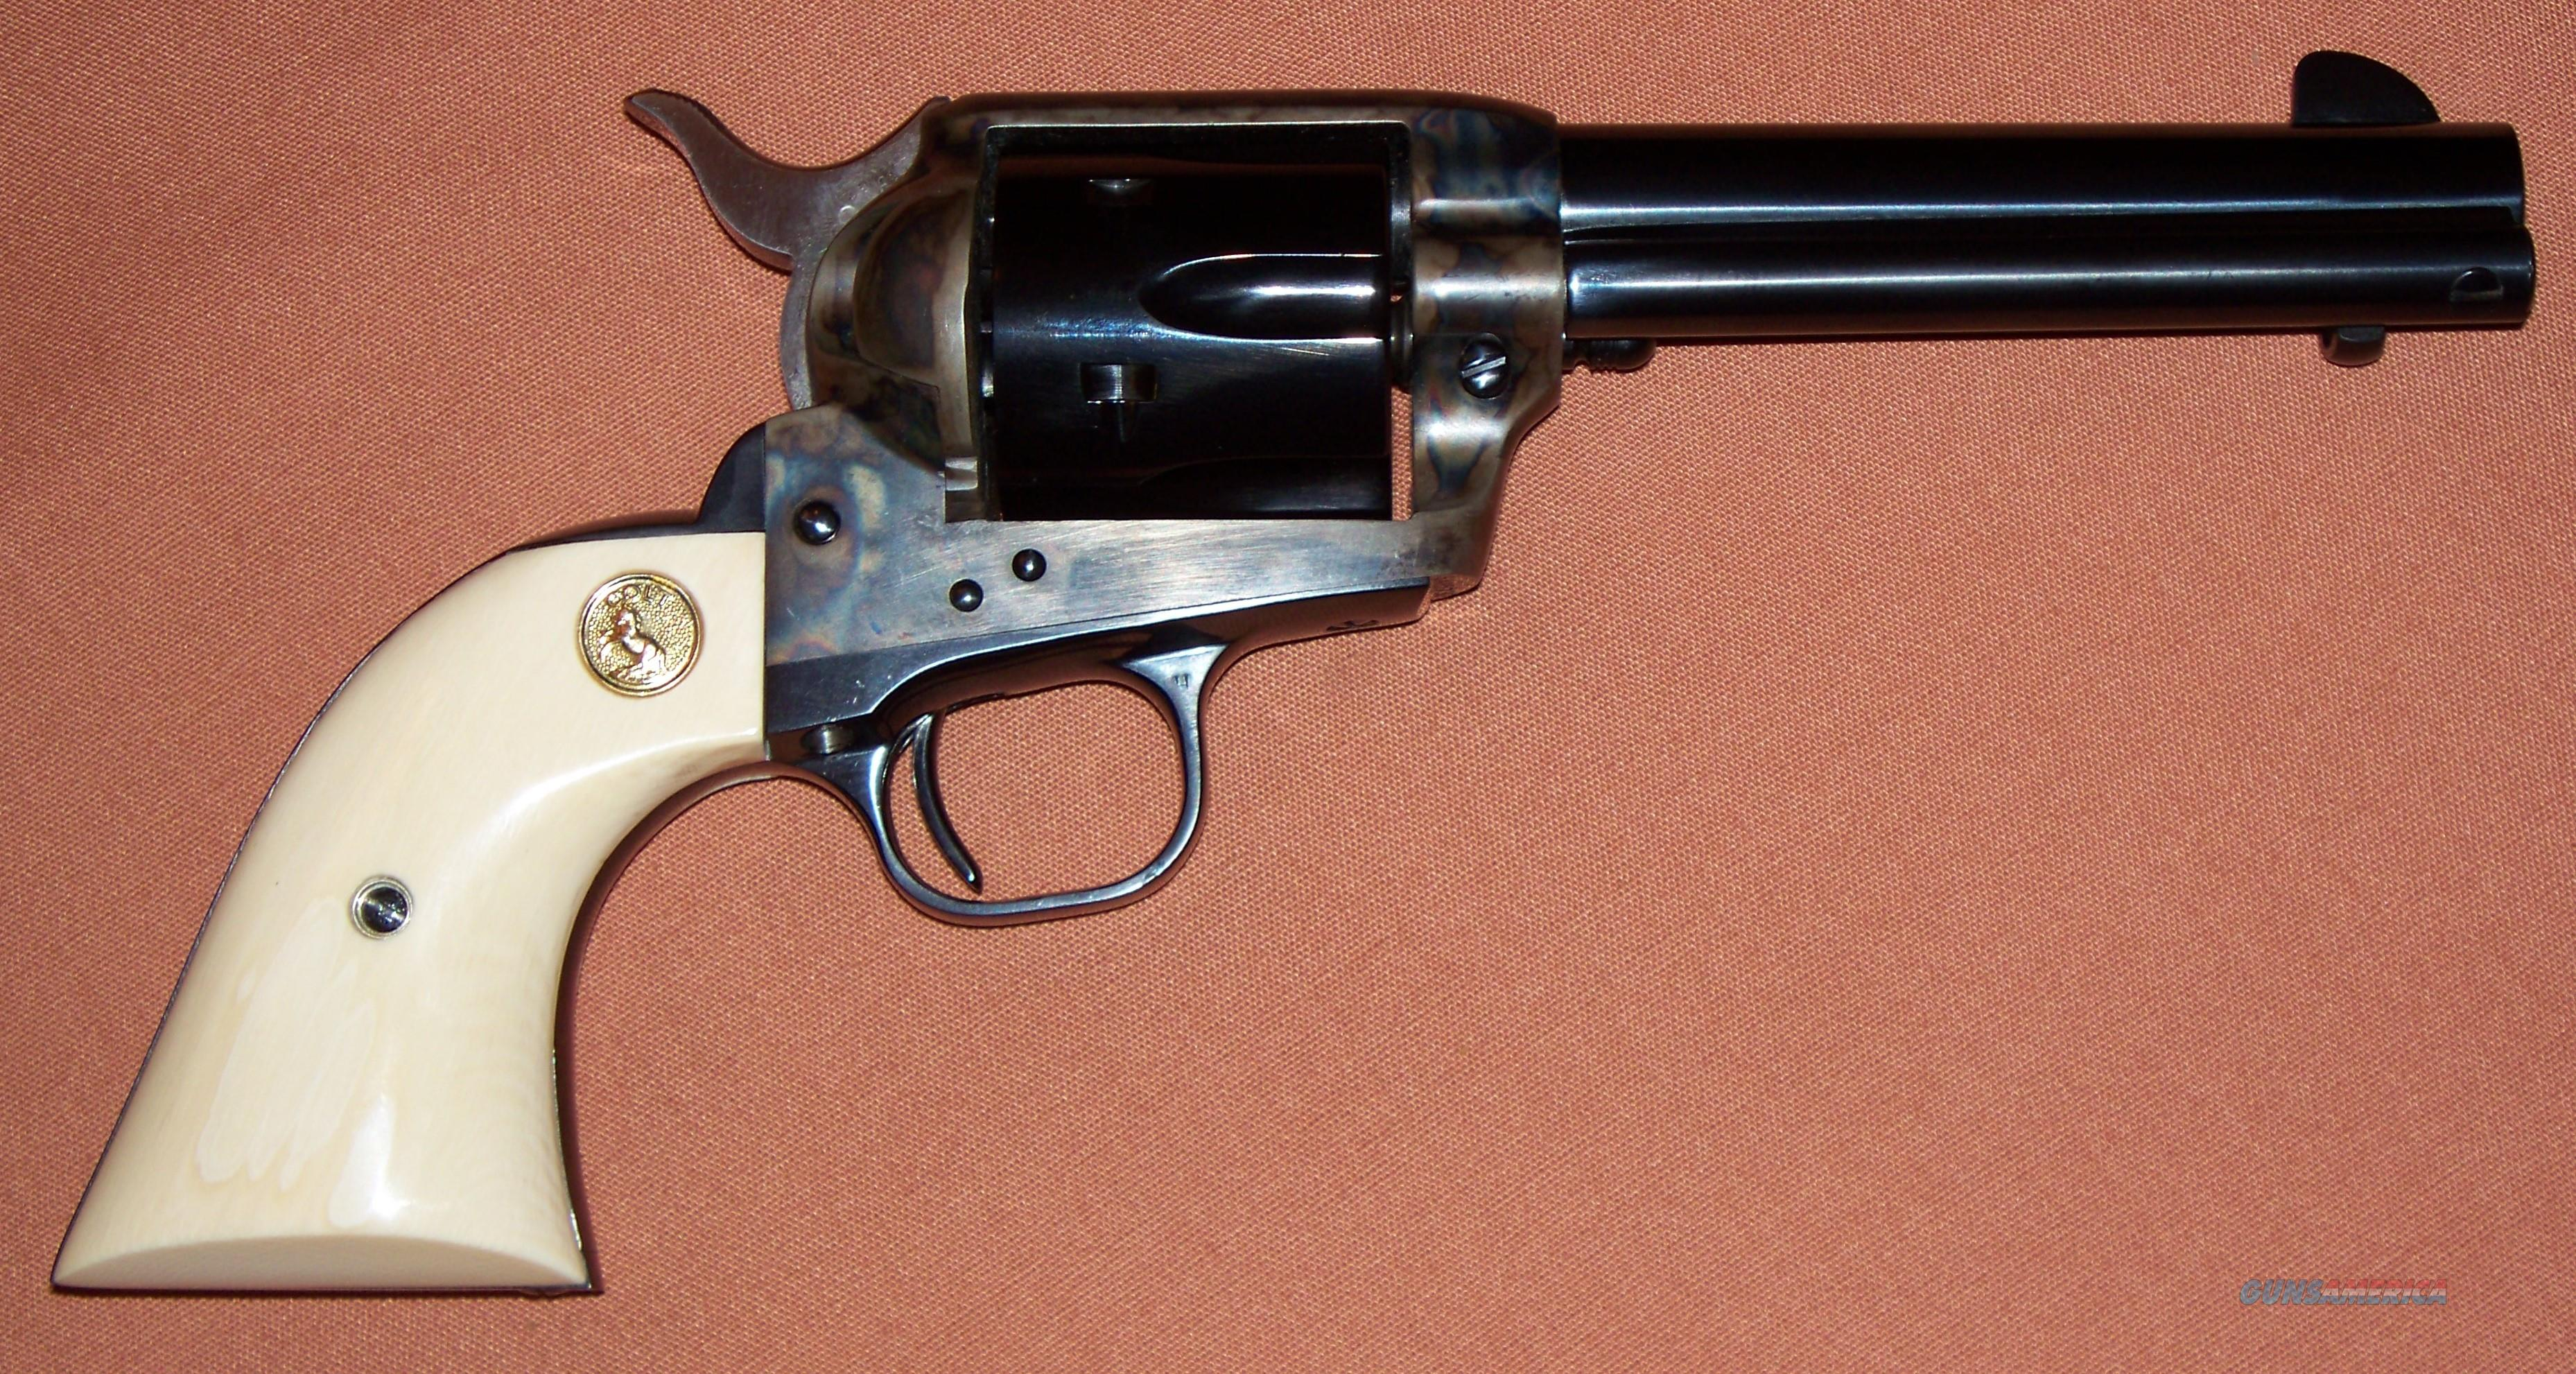 "Colt 3rd SAA Single Action Army Revolver 4.75"" Barrel 45/45 ACP Dual Cylinders Factory Ivory Grips  Guns > Pistols > Colt Single Action Revolvers - 3rd Gen."